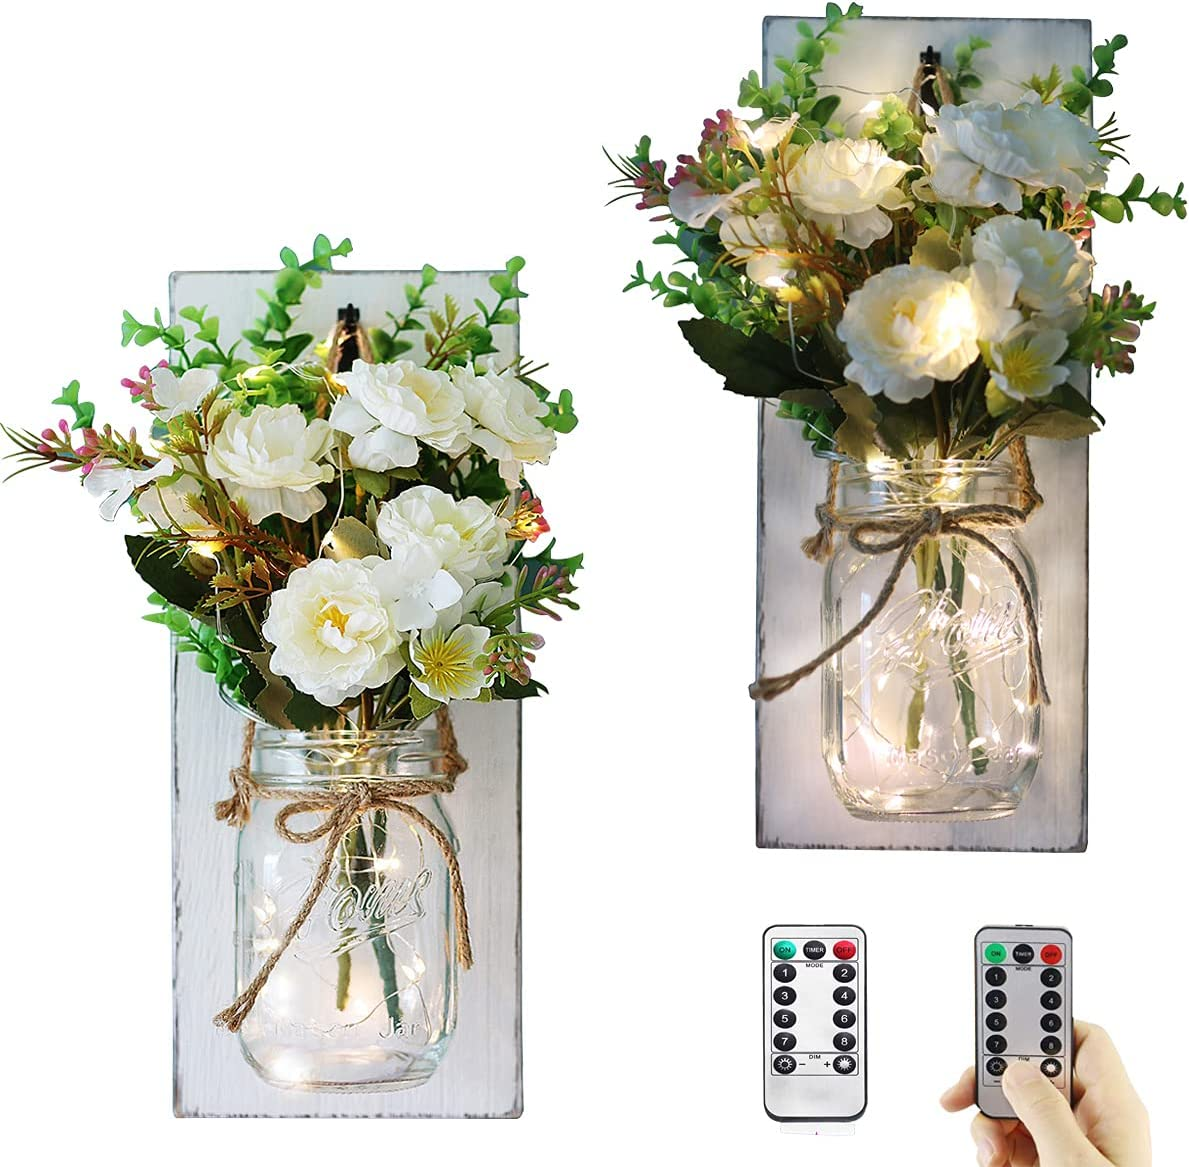 Rustic Home Decor Mason Jar Sconces, Bathroom and Living Room Decorations with Timer Remote Control Led Fairy Lights, Hanging Vintage Wood Art Goods and Flower Decor. Farmhouse kitchen wall Decor.